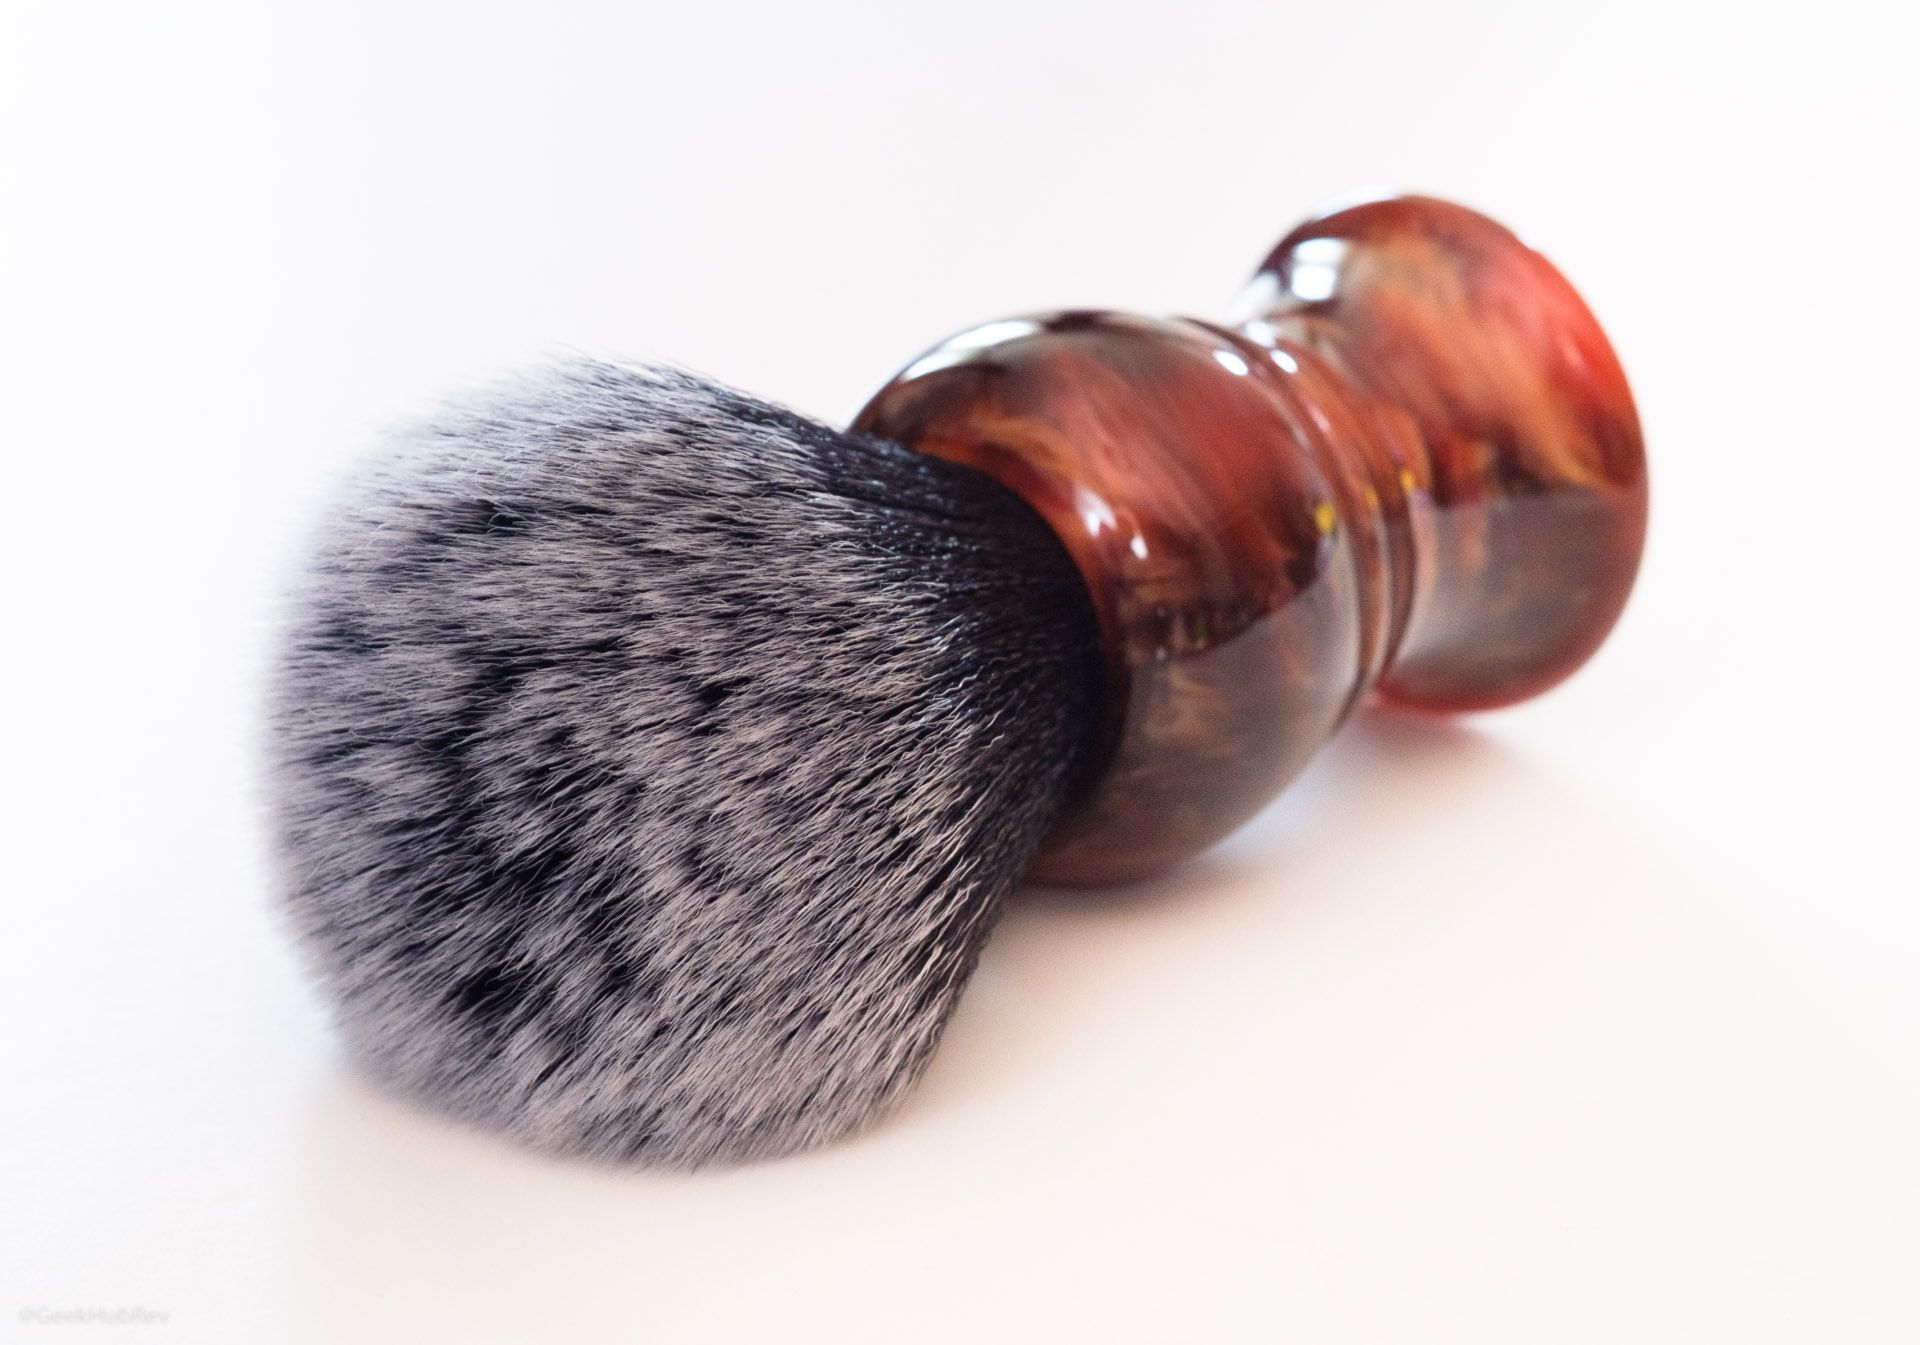 Włosie pędzla do golenia Yaqi R151111S1-26 Tuxedo Synthetic Shaving Brush